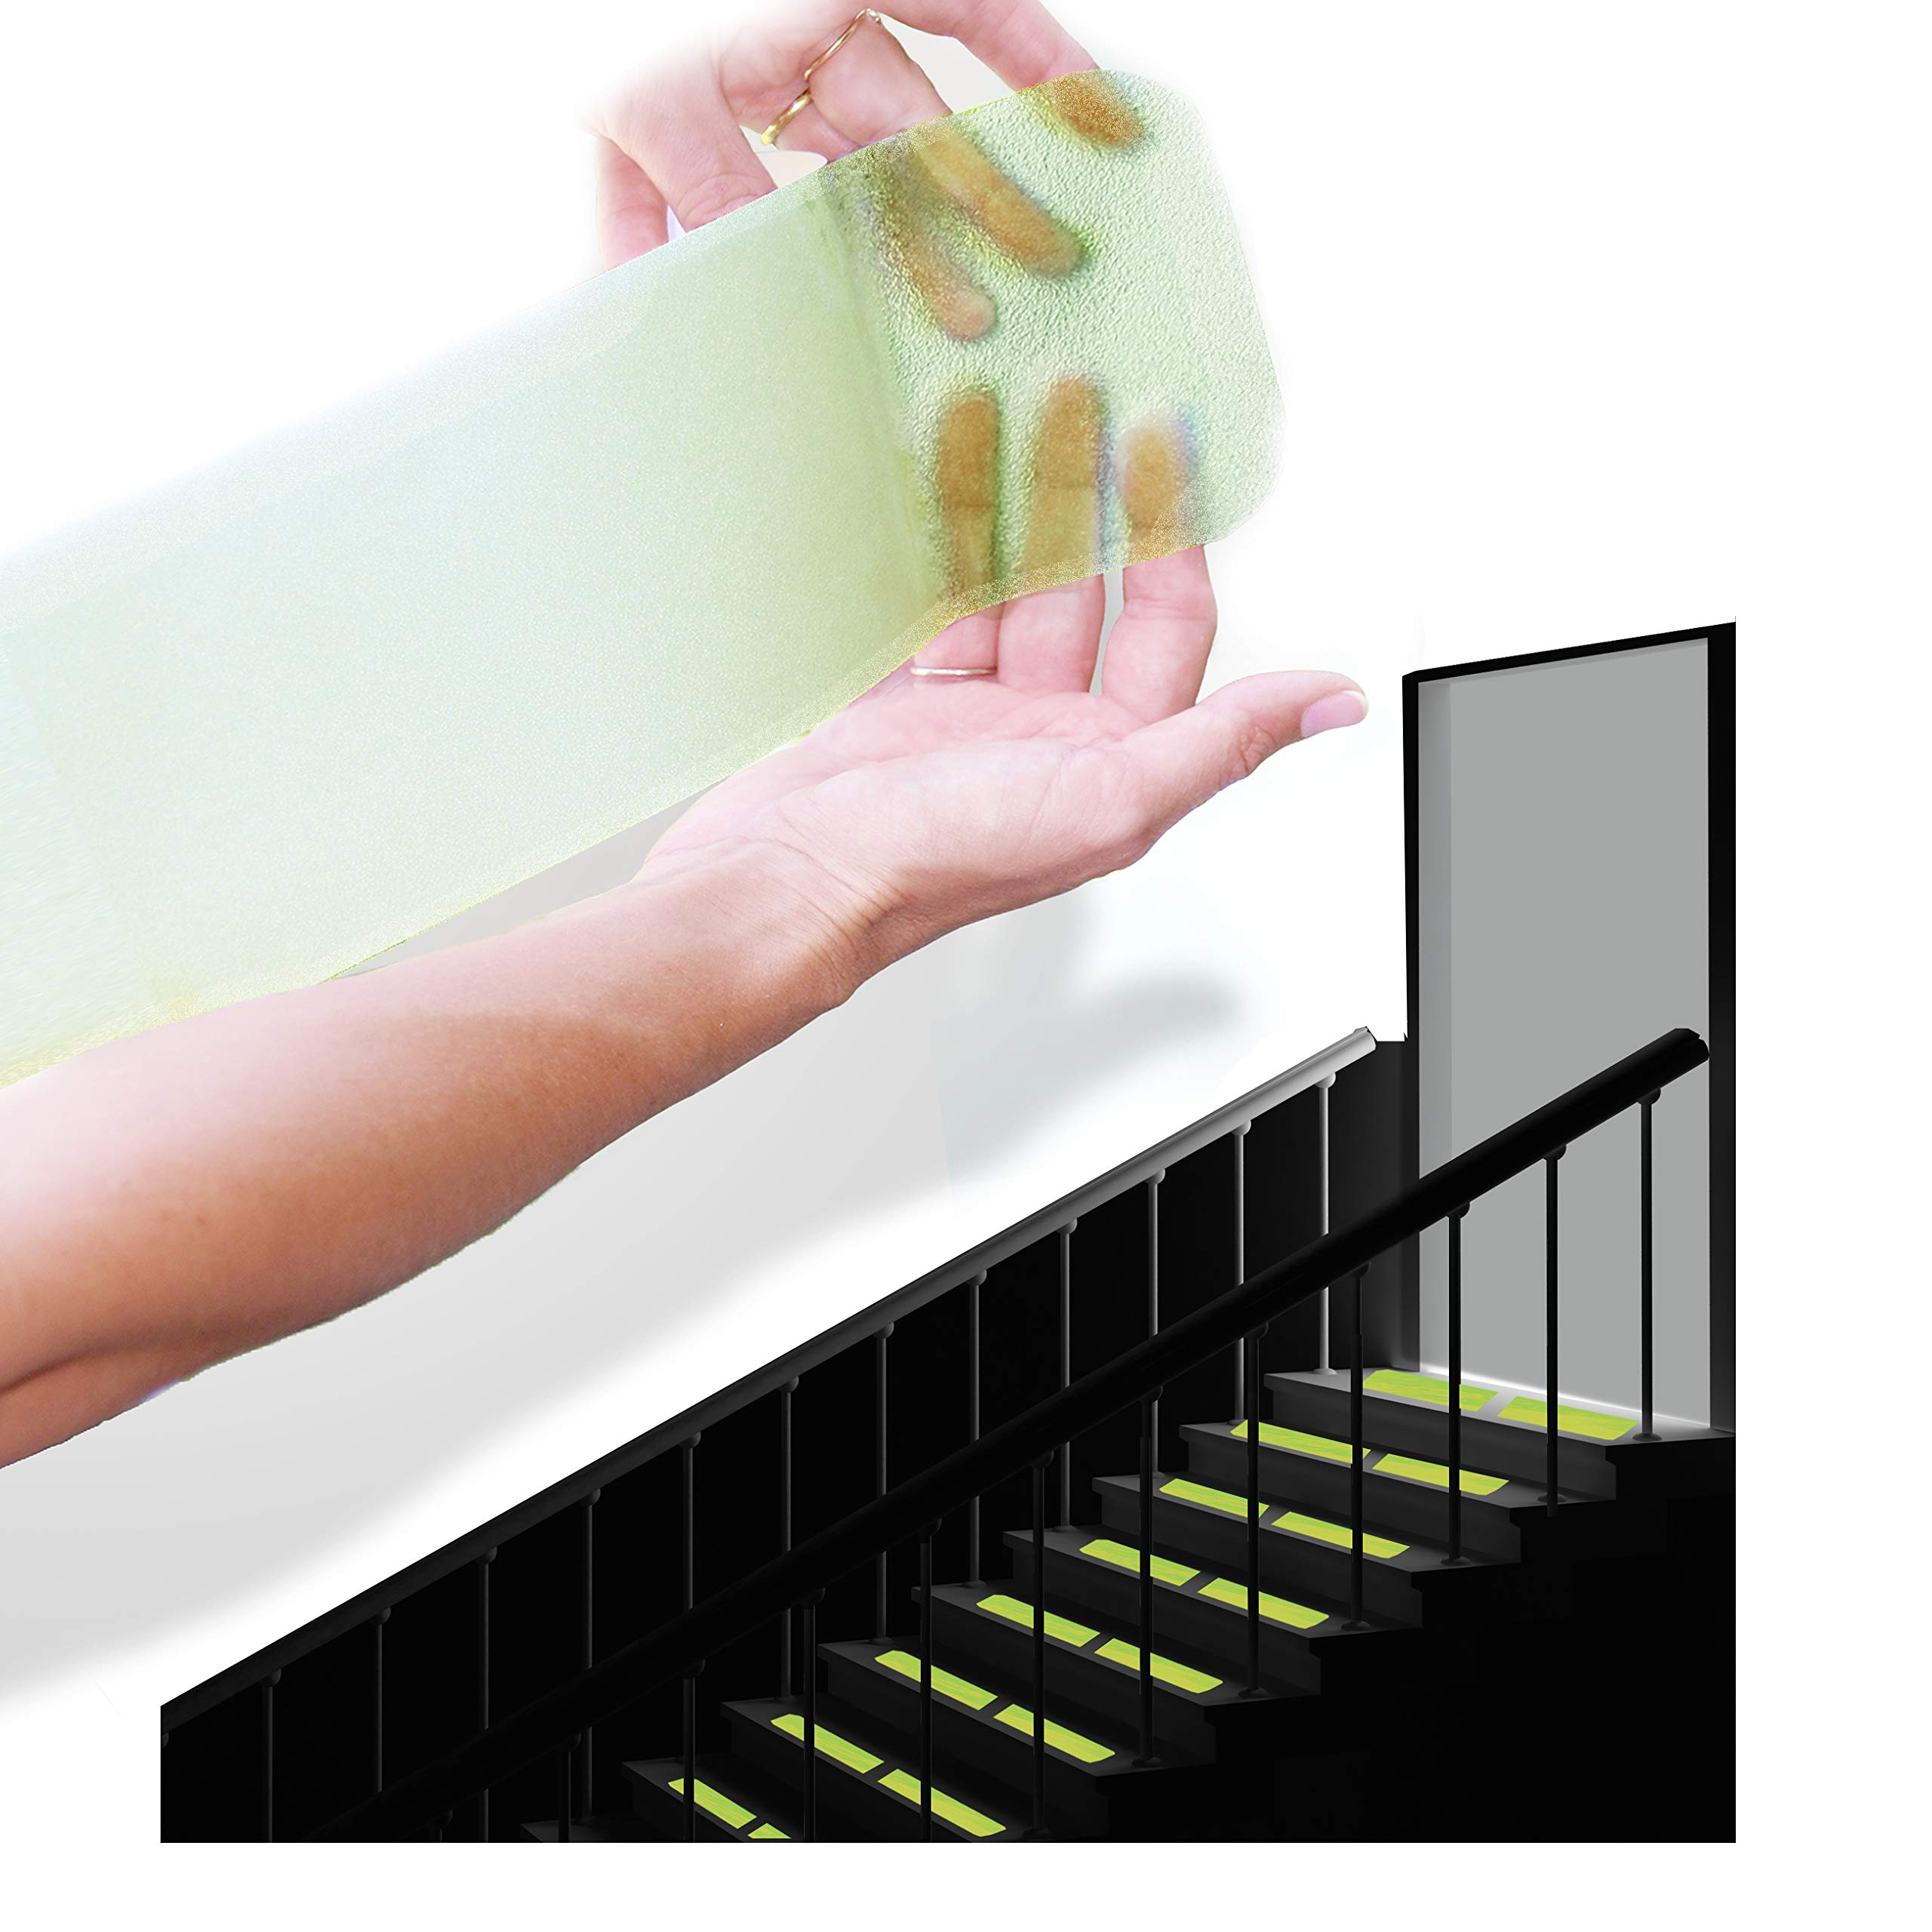 """StepStrips StepTips Anti Slip Tape ''Stair Treads'' Clear & Glow in the Dark For Safety Non Slip Grip 20 Pack 4""""x12"""" Pre Cut Skid Strips Traction Non Abrasive PVC FREE for Bare Feet Kids, Elders & Dogs"""